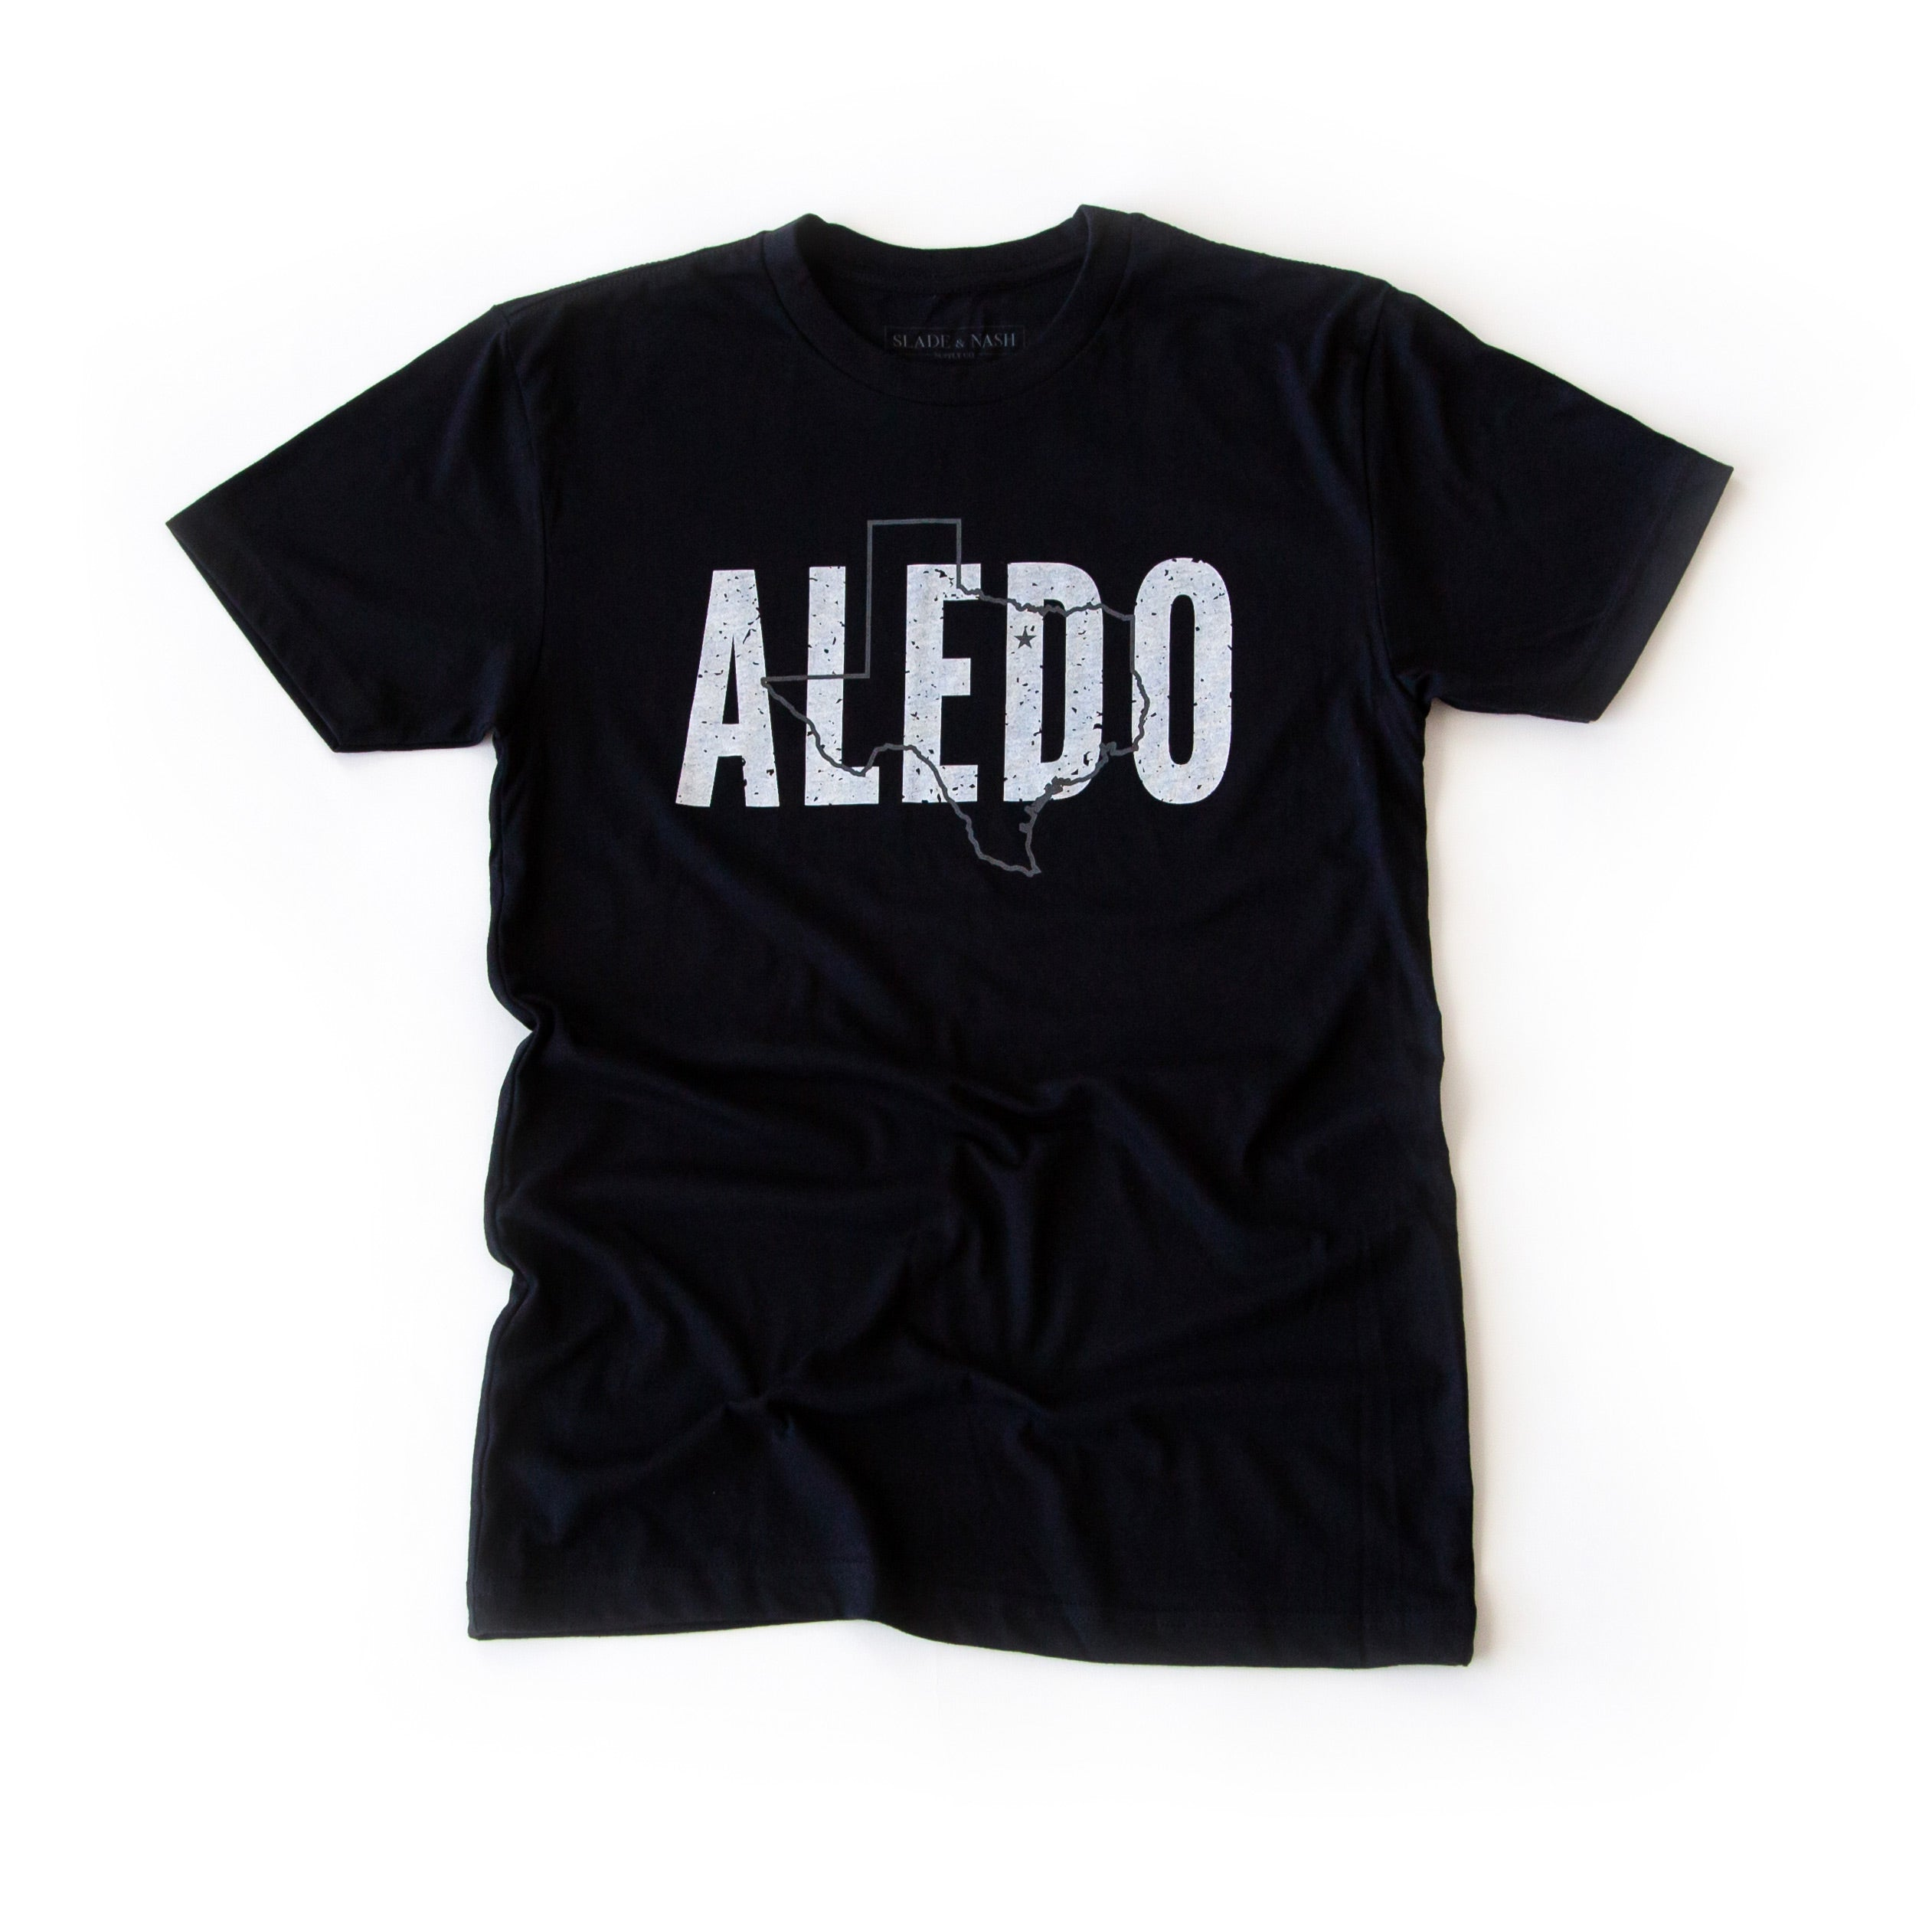 Aledo Texas Outline - ADULT